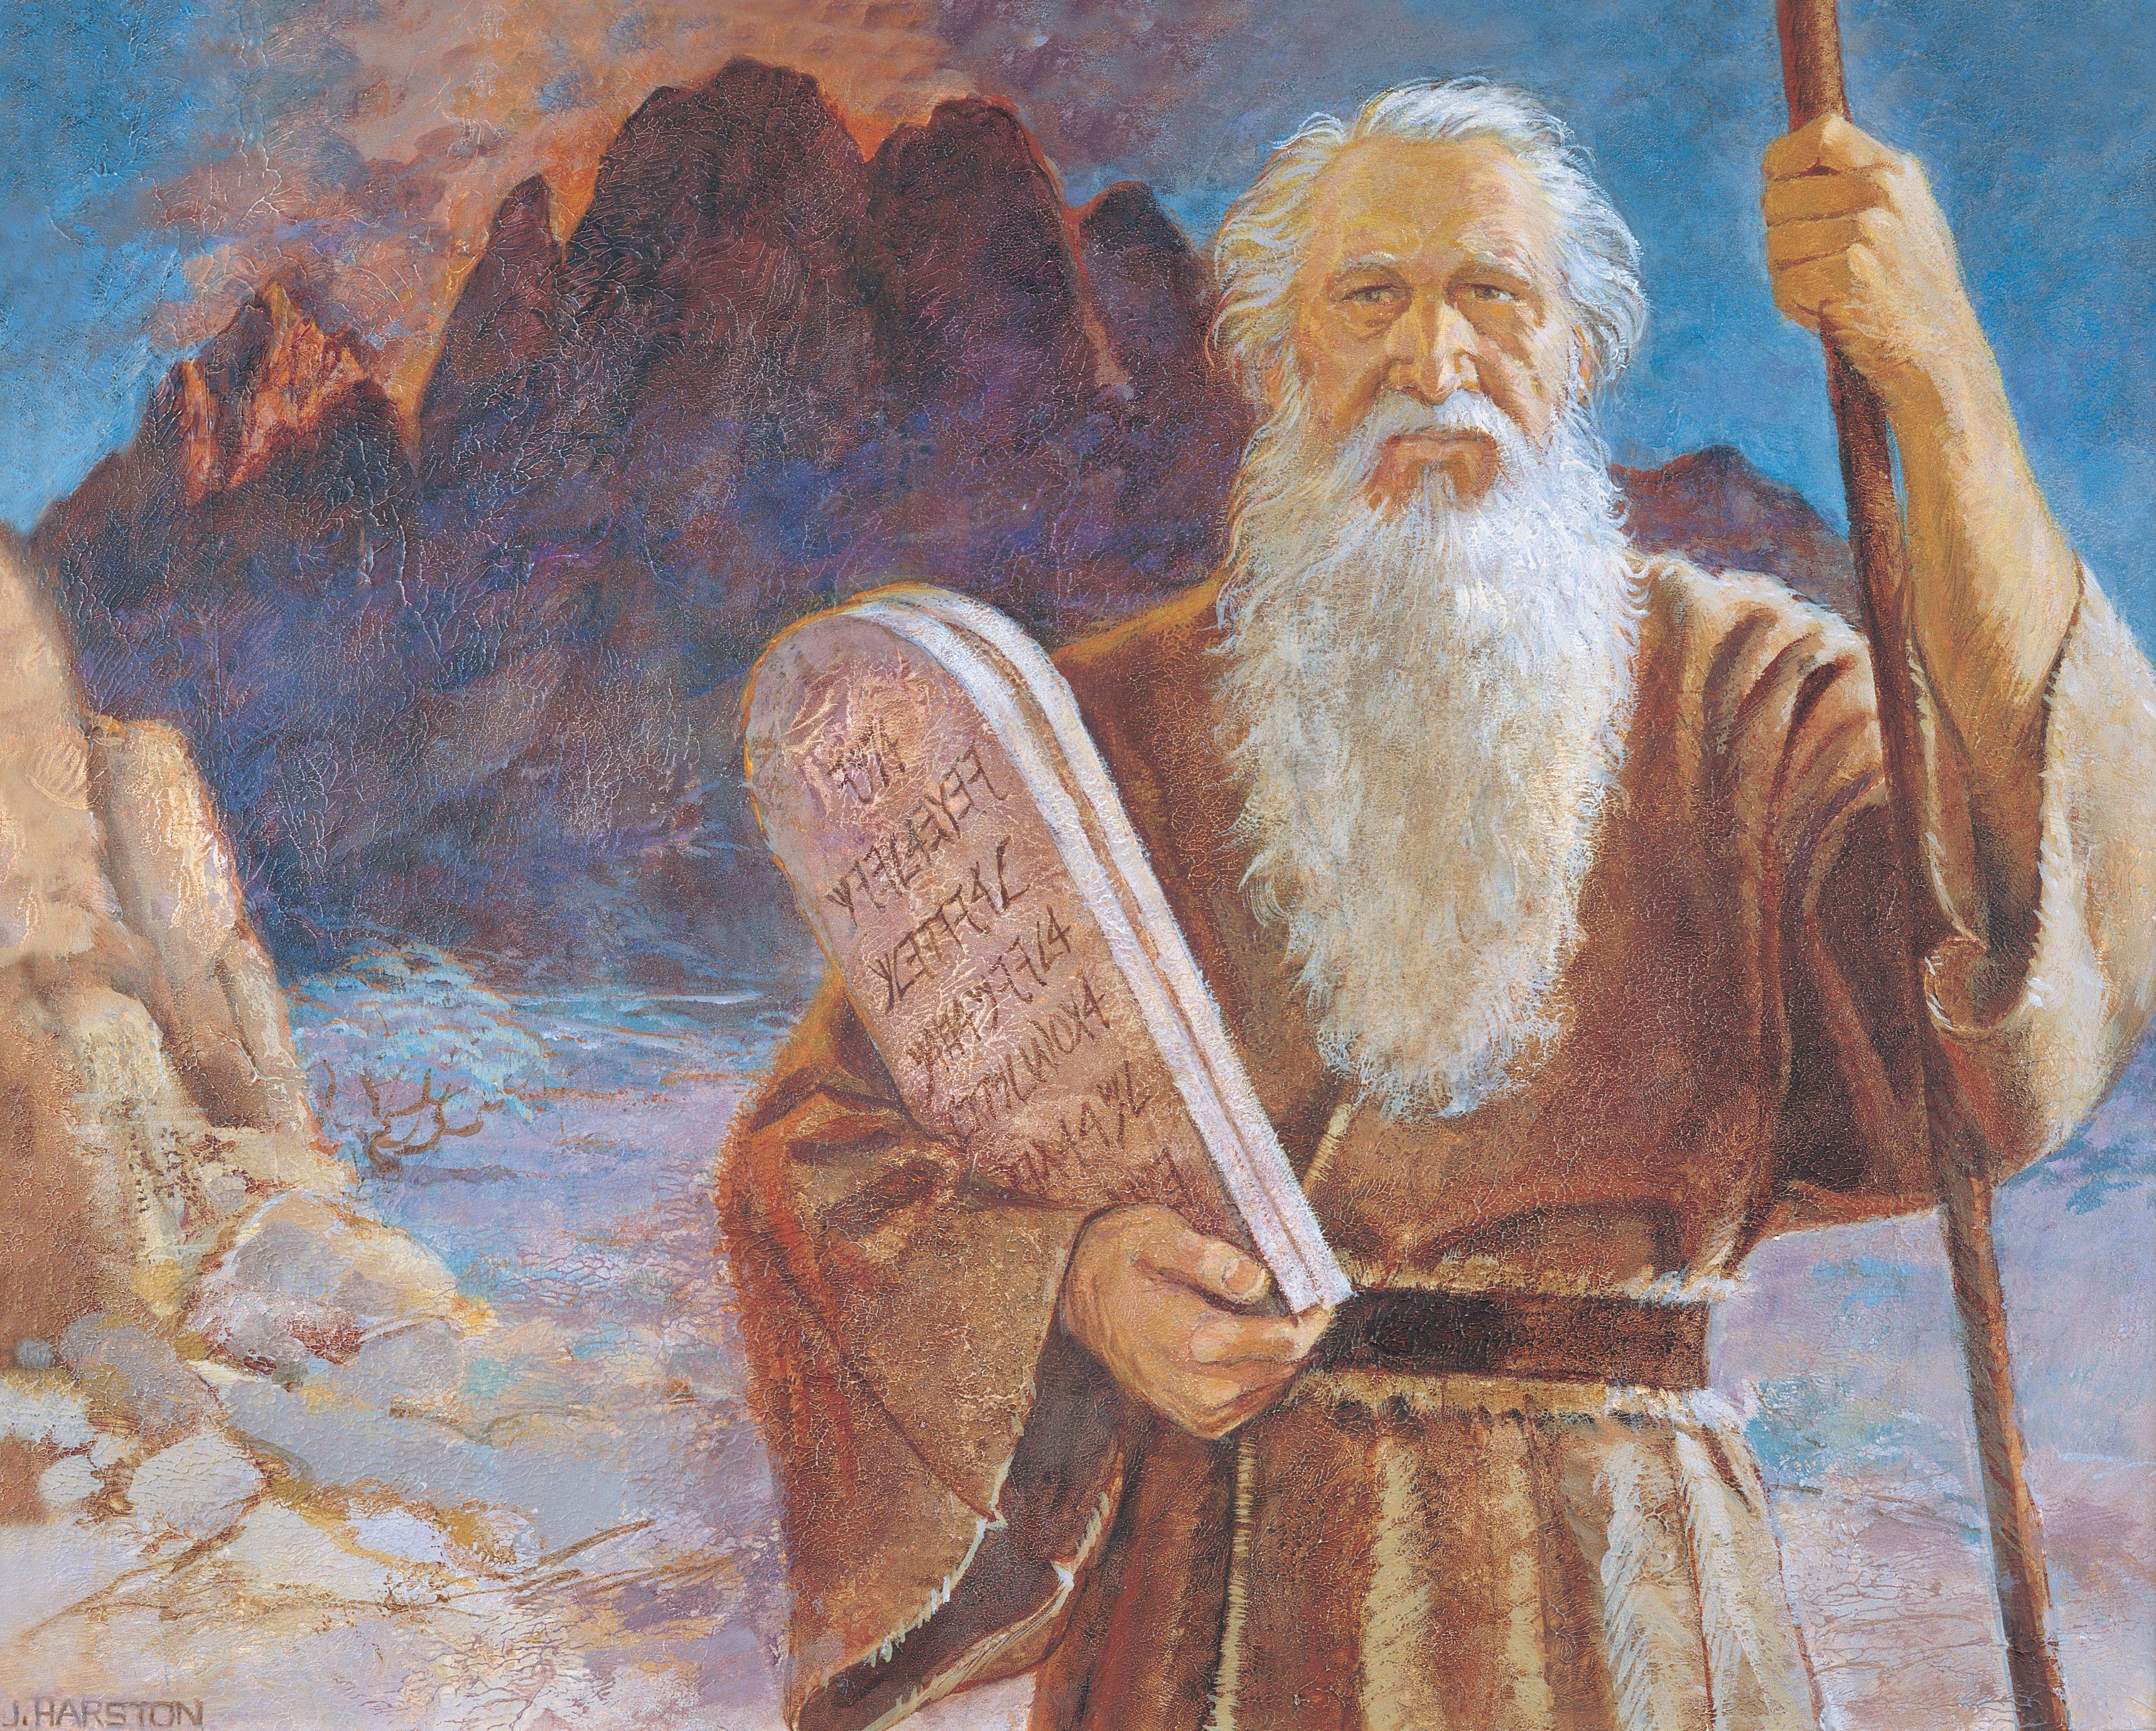 Moses and the Tablets, by Jerry Harston; GAB 14; Primary manual 6-24; Exodus 19–20